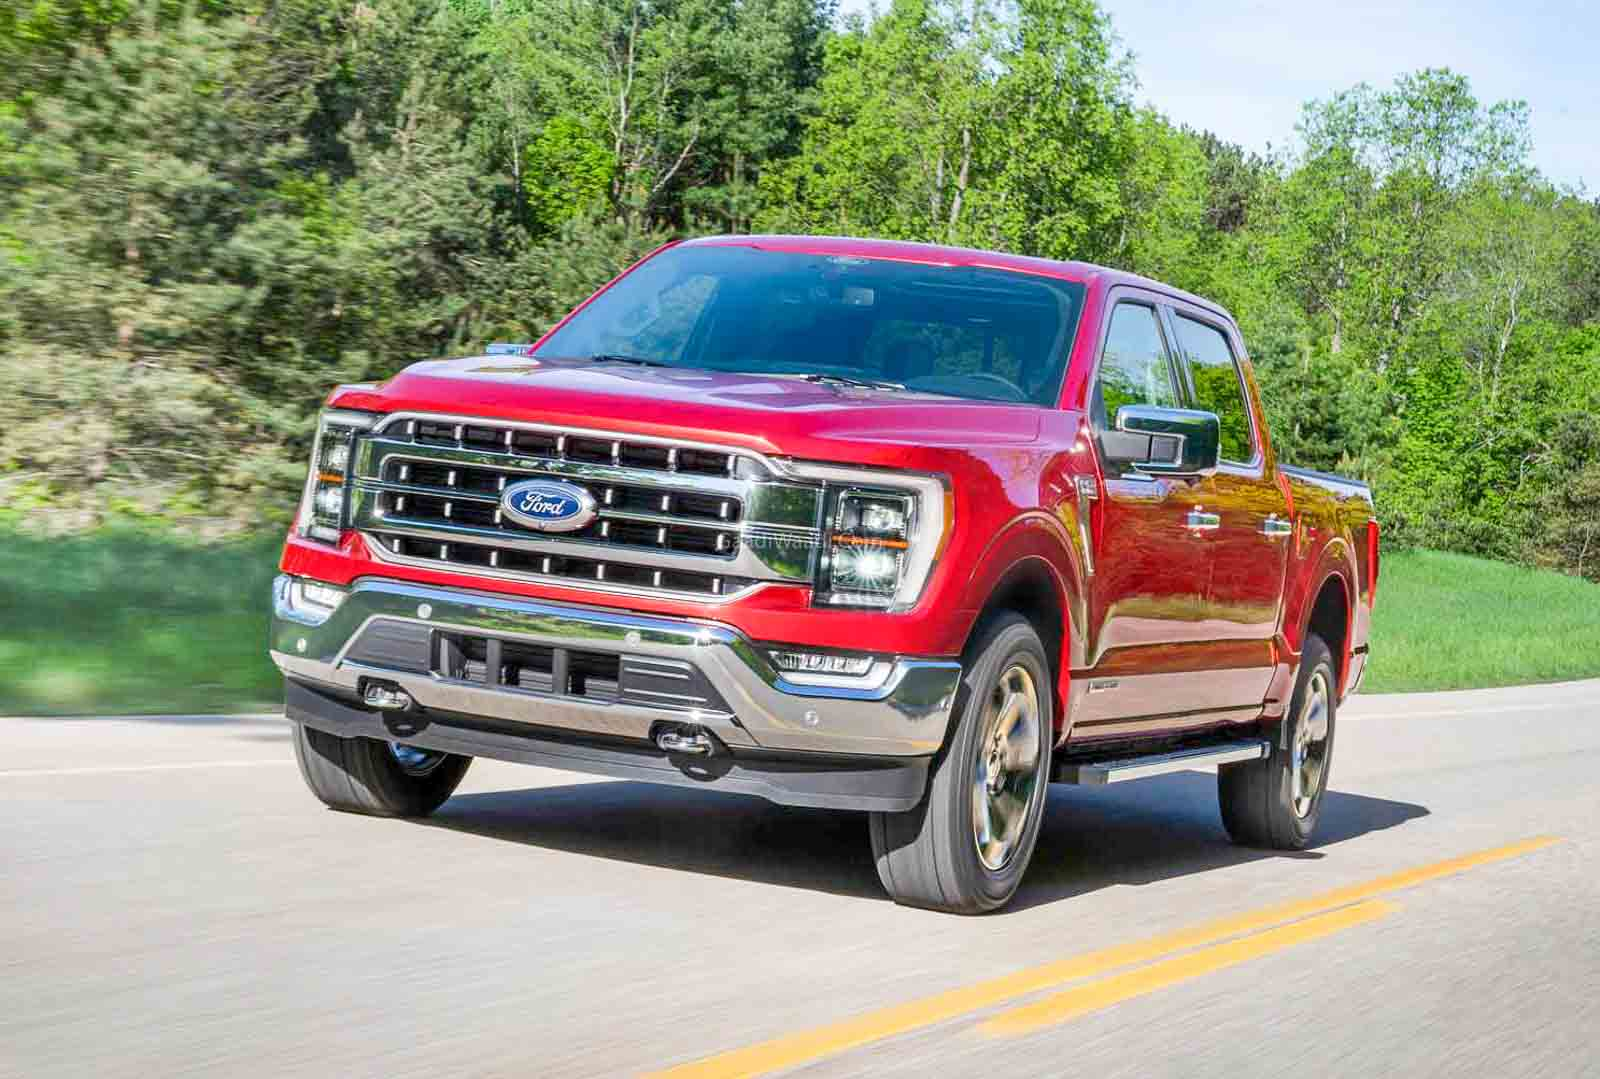 new-gen 2021 ford f-150 revealed with v6 hybrid engine